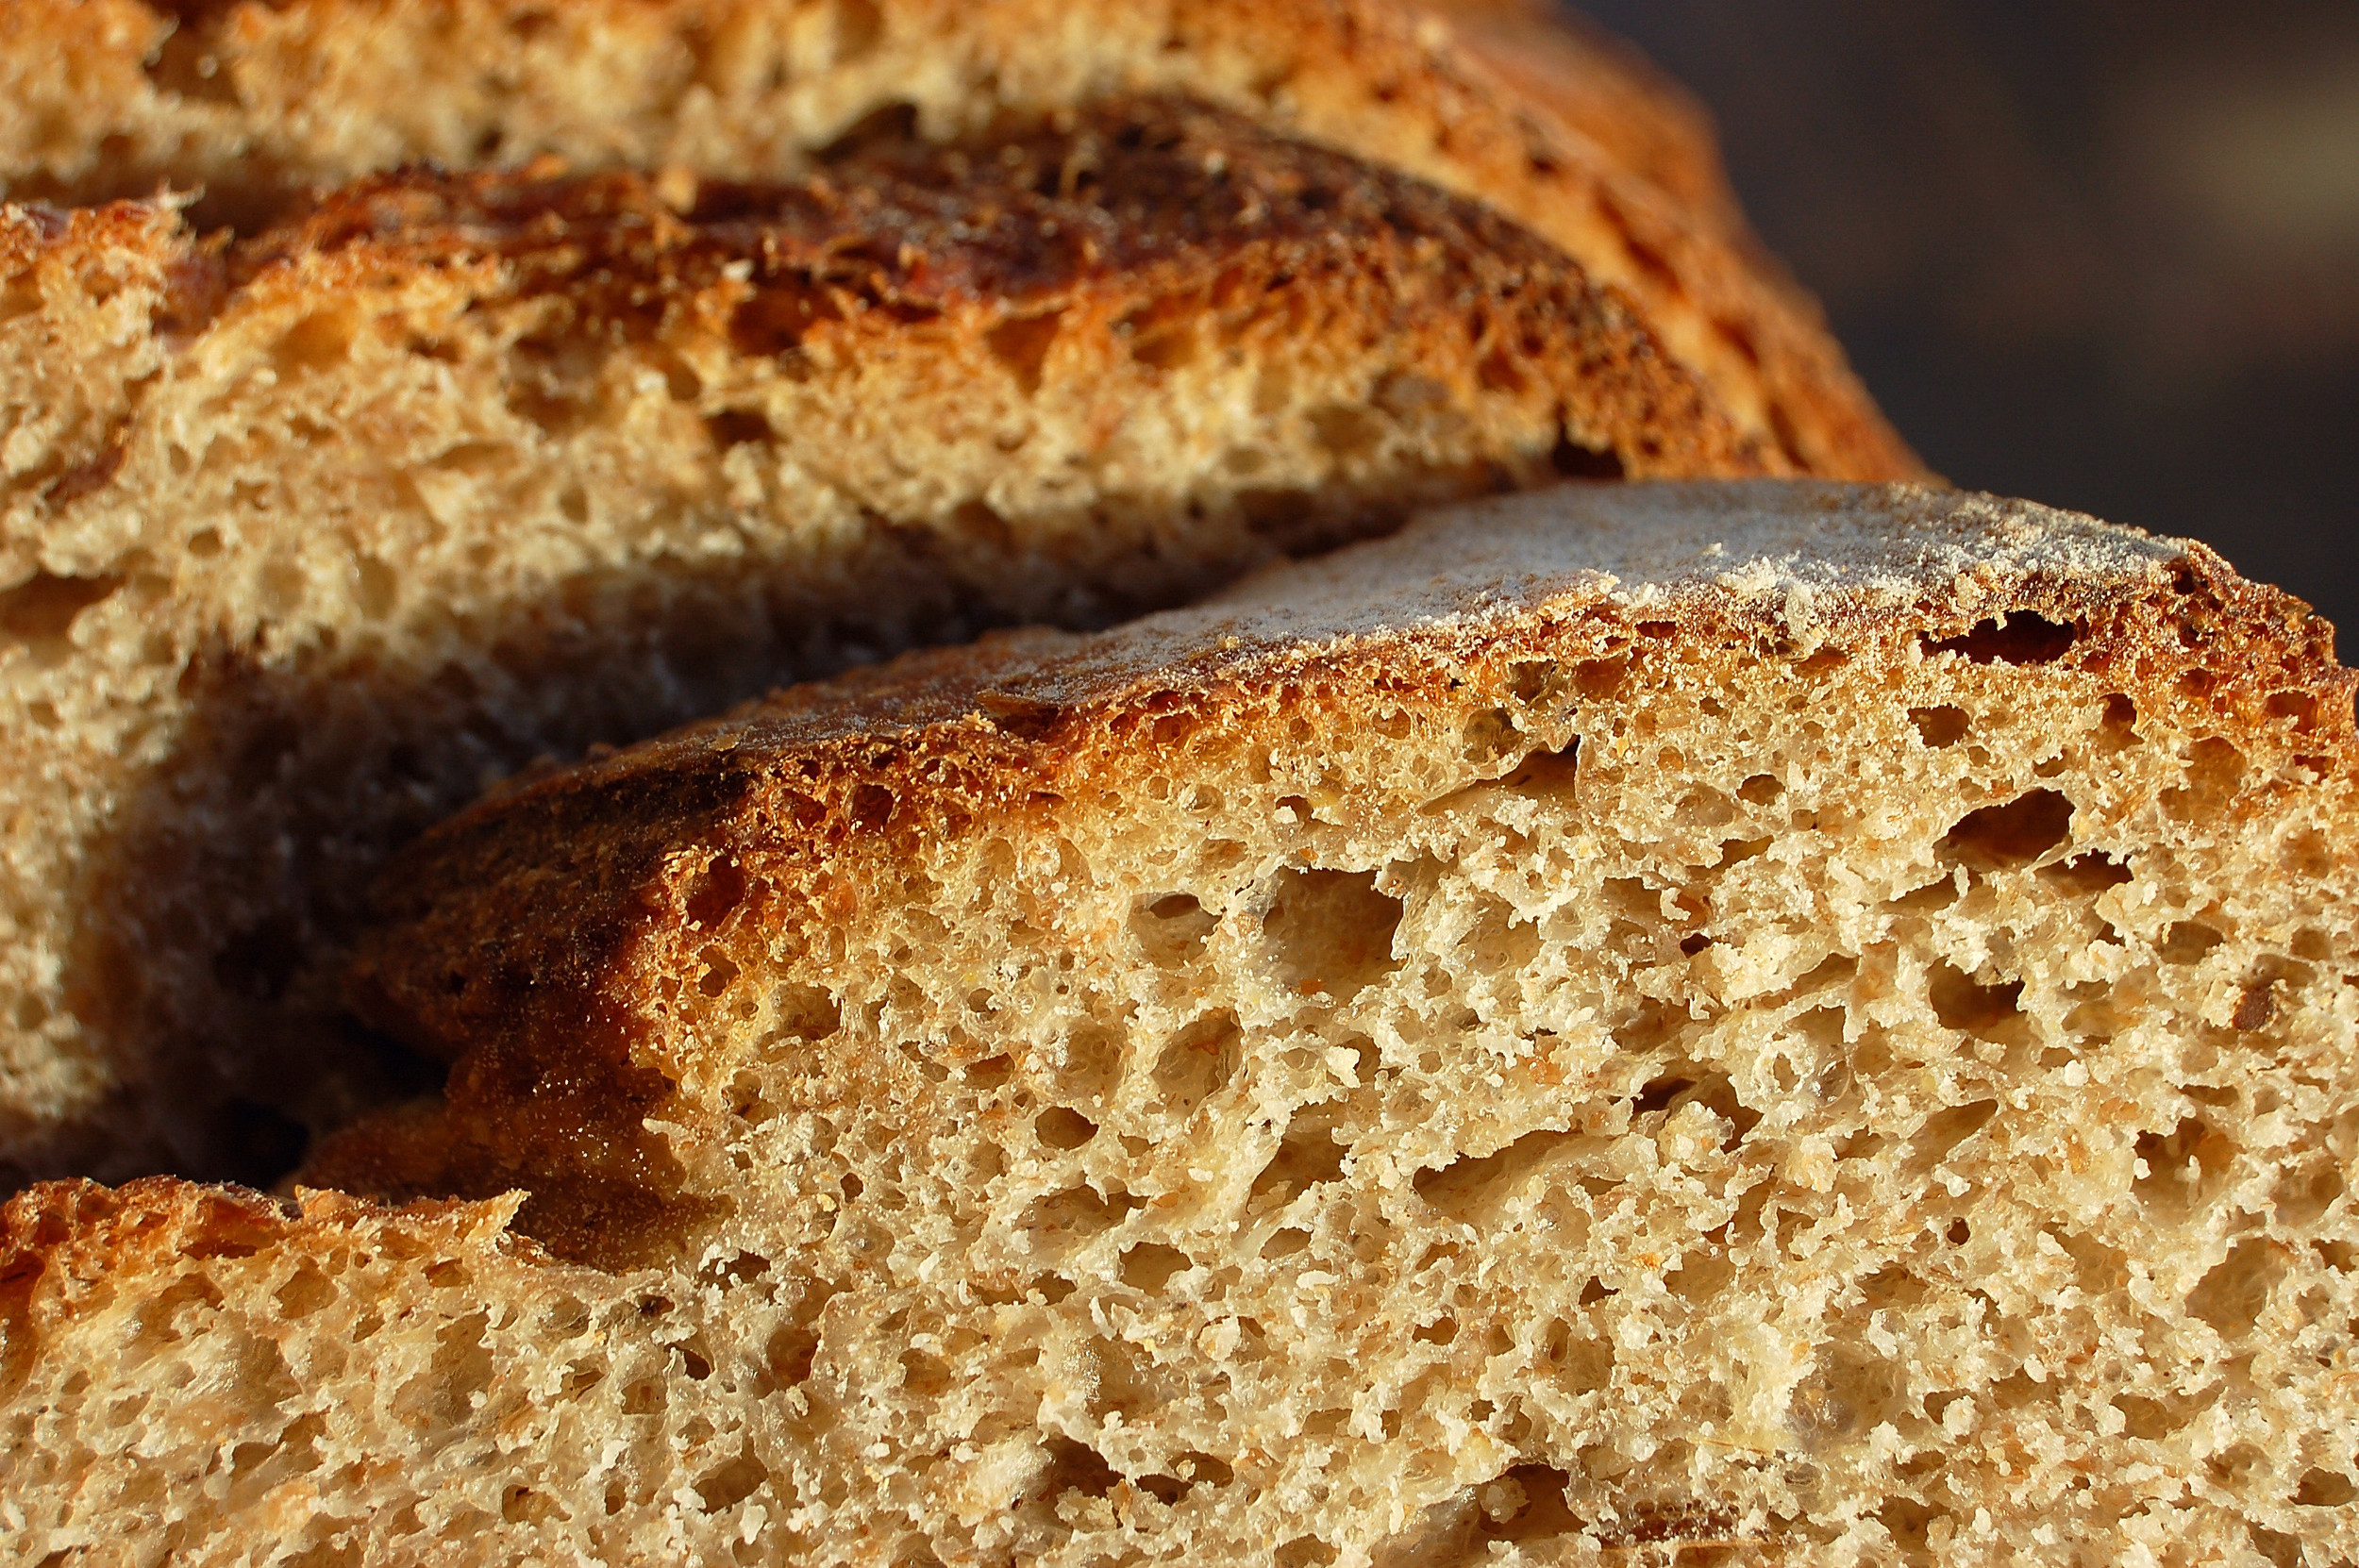 Why do we make our own bread? For the flavour, the crust and the crumb.